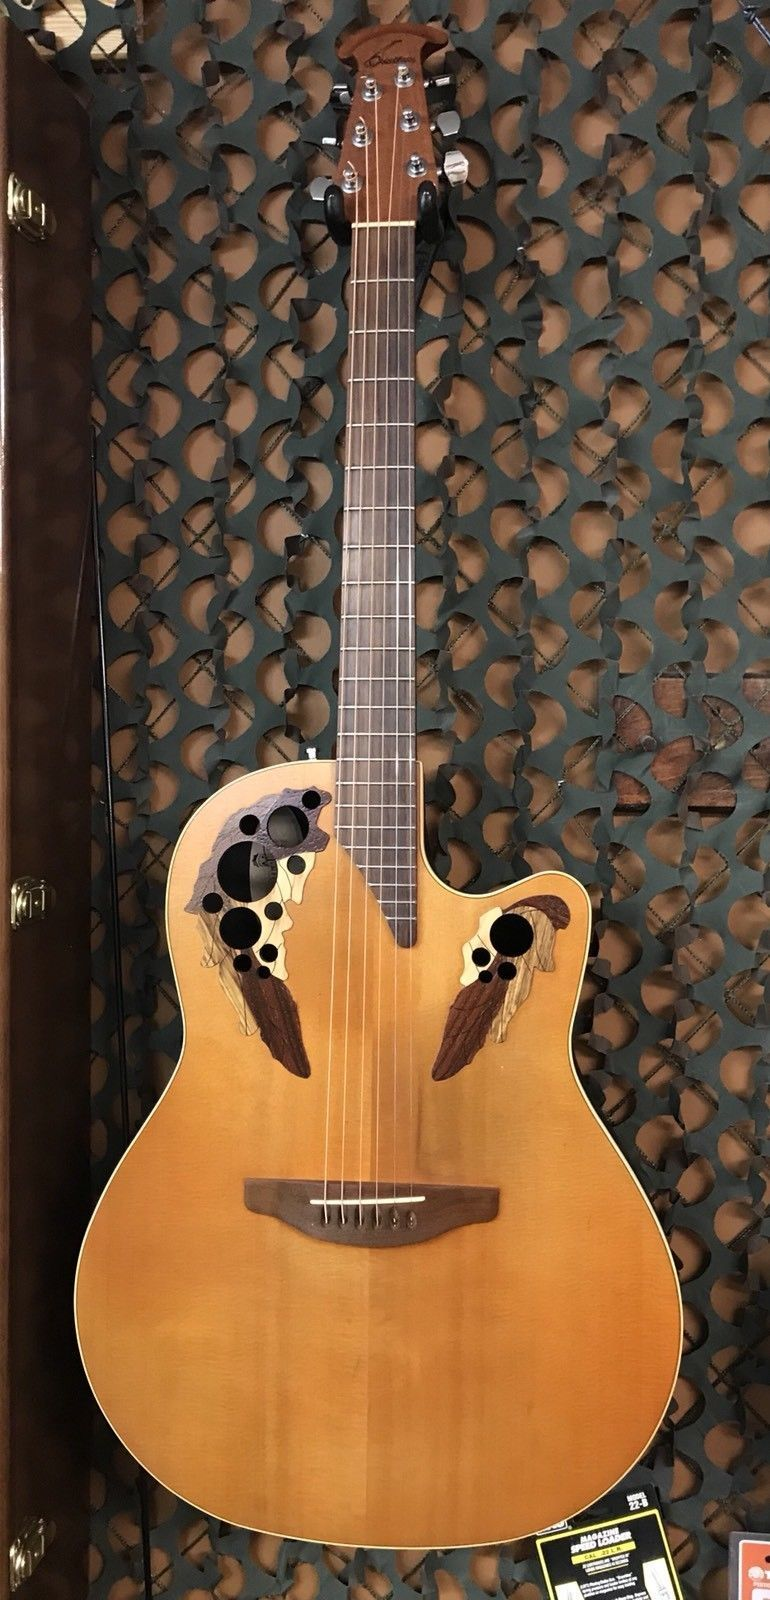 Ovation S778 Elite Special Acoustic Electric Guitar W Original Hard Case Ovation Guitar Guitar Acoustic Electric Guitar